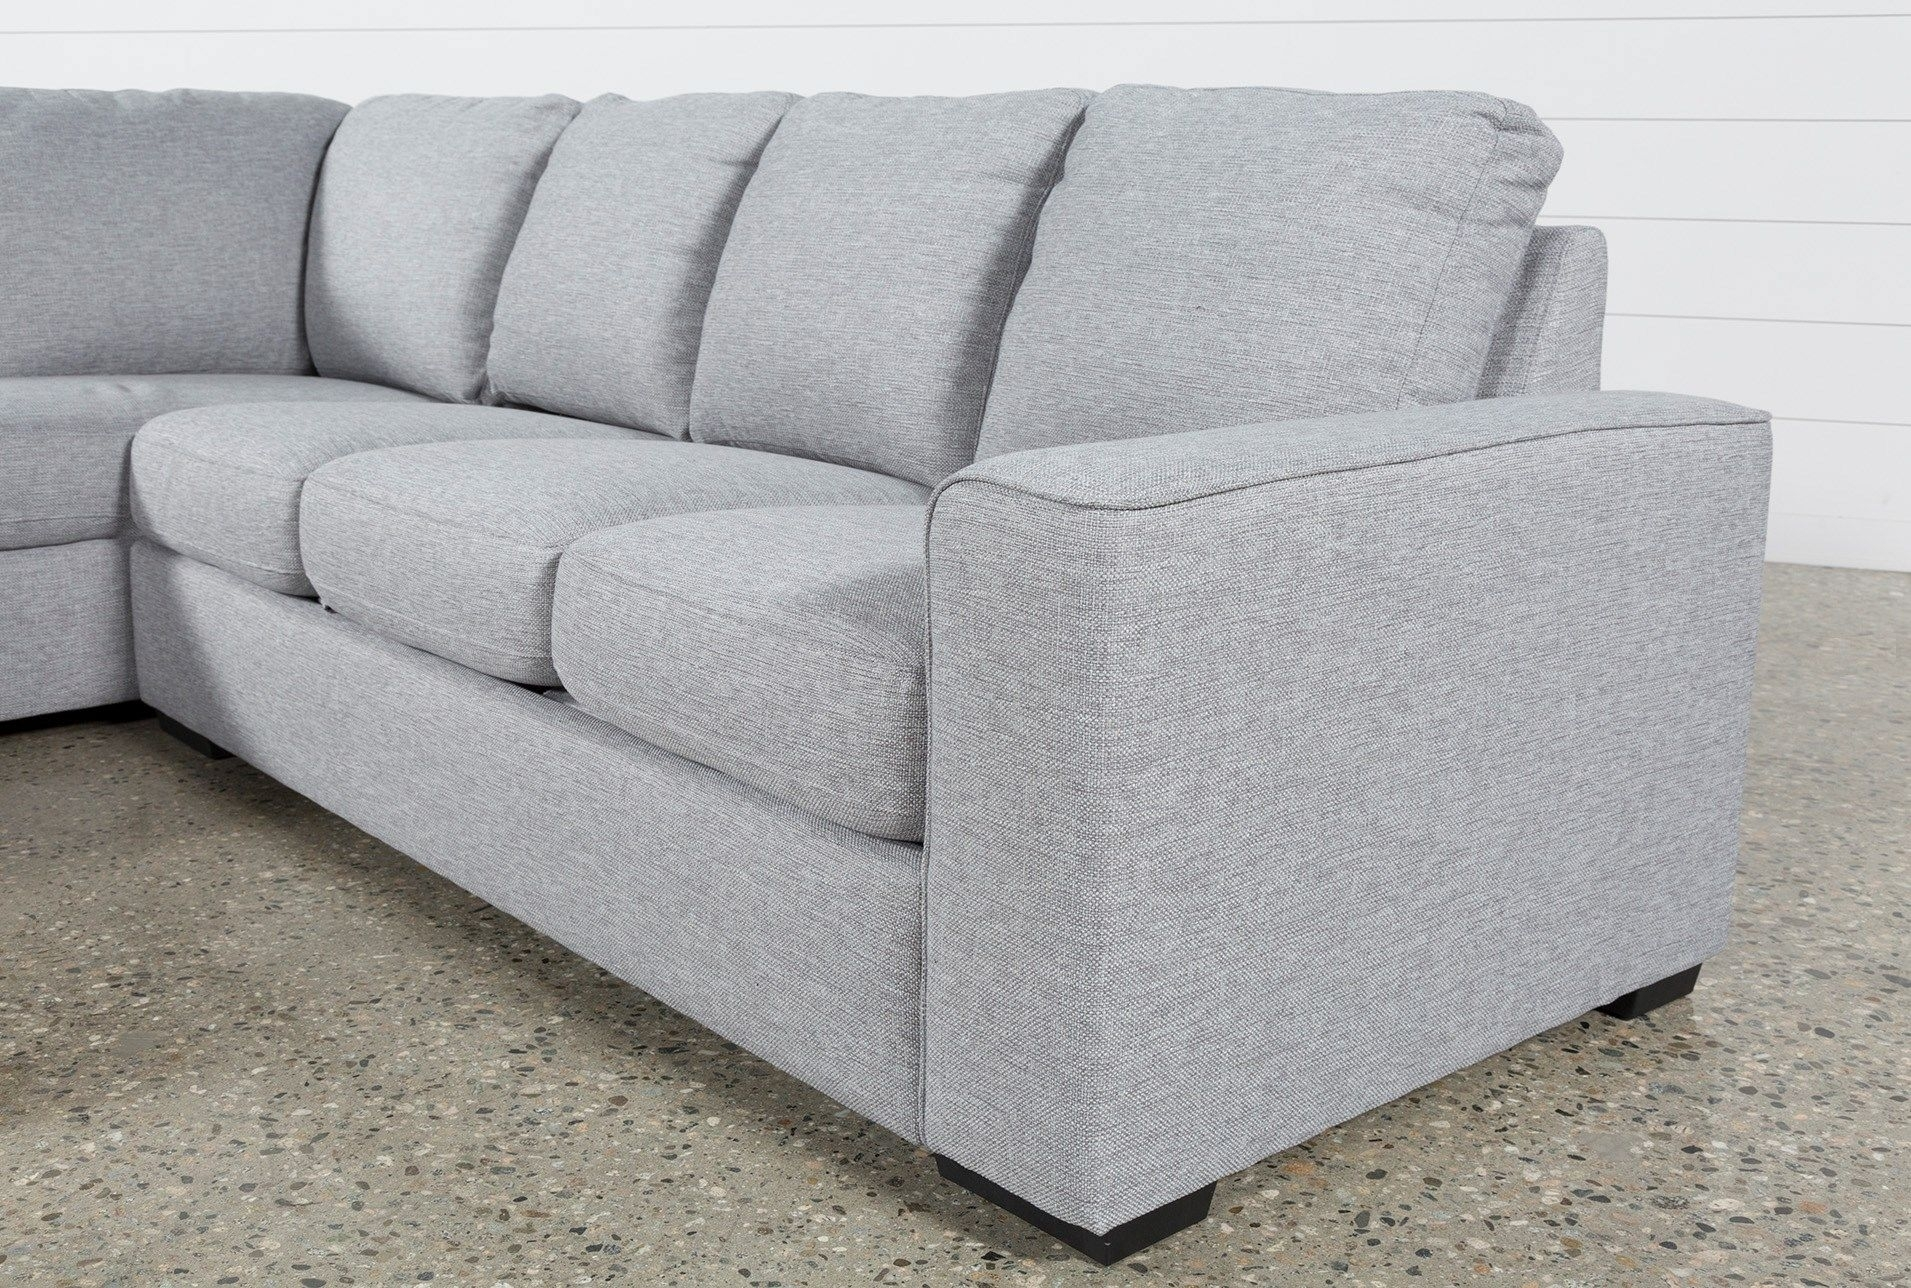 Lucy Grey 2 Piece Sectional W/laf Chaise | Gray And Room With Regard To Arrowmask 2 Piece Sectionals With Sleeper & Left Facing Chaise (Image 14 of 25)